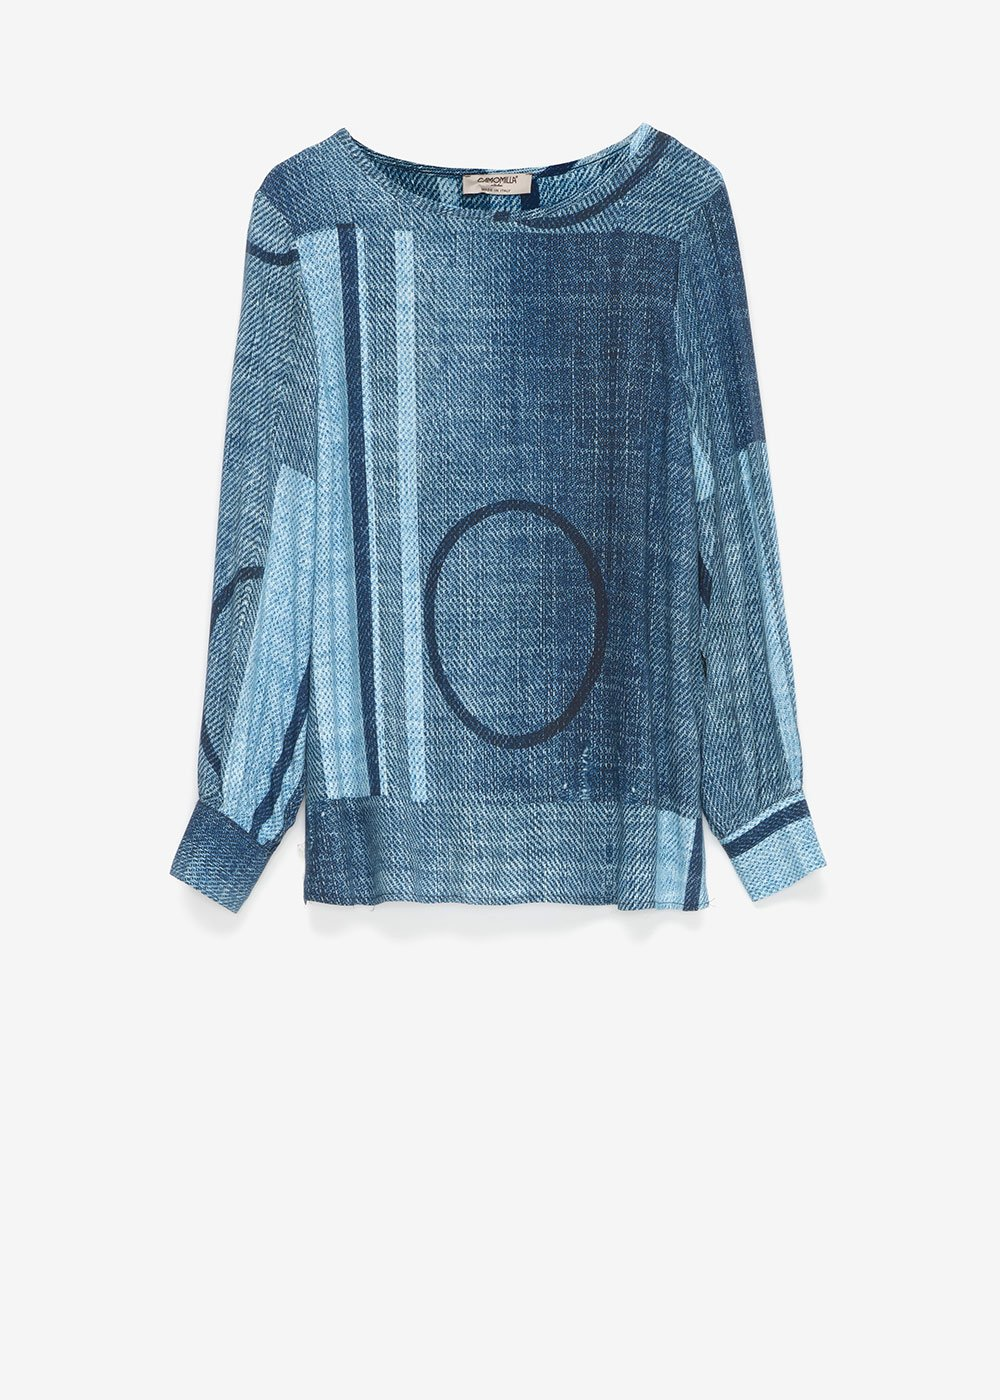 Sophie denim-effect t-shirt - Oltremare / Fog Multi - Woman